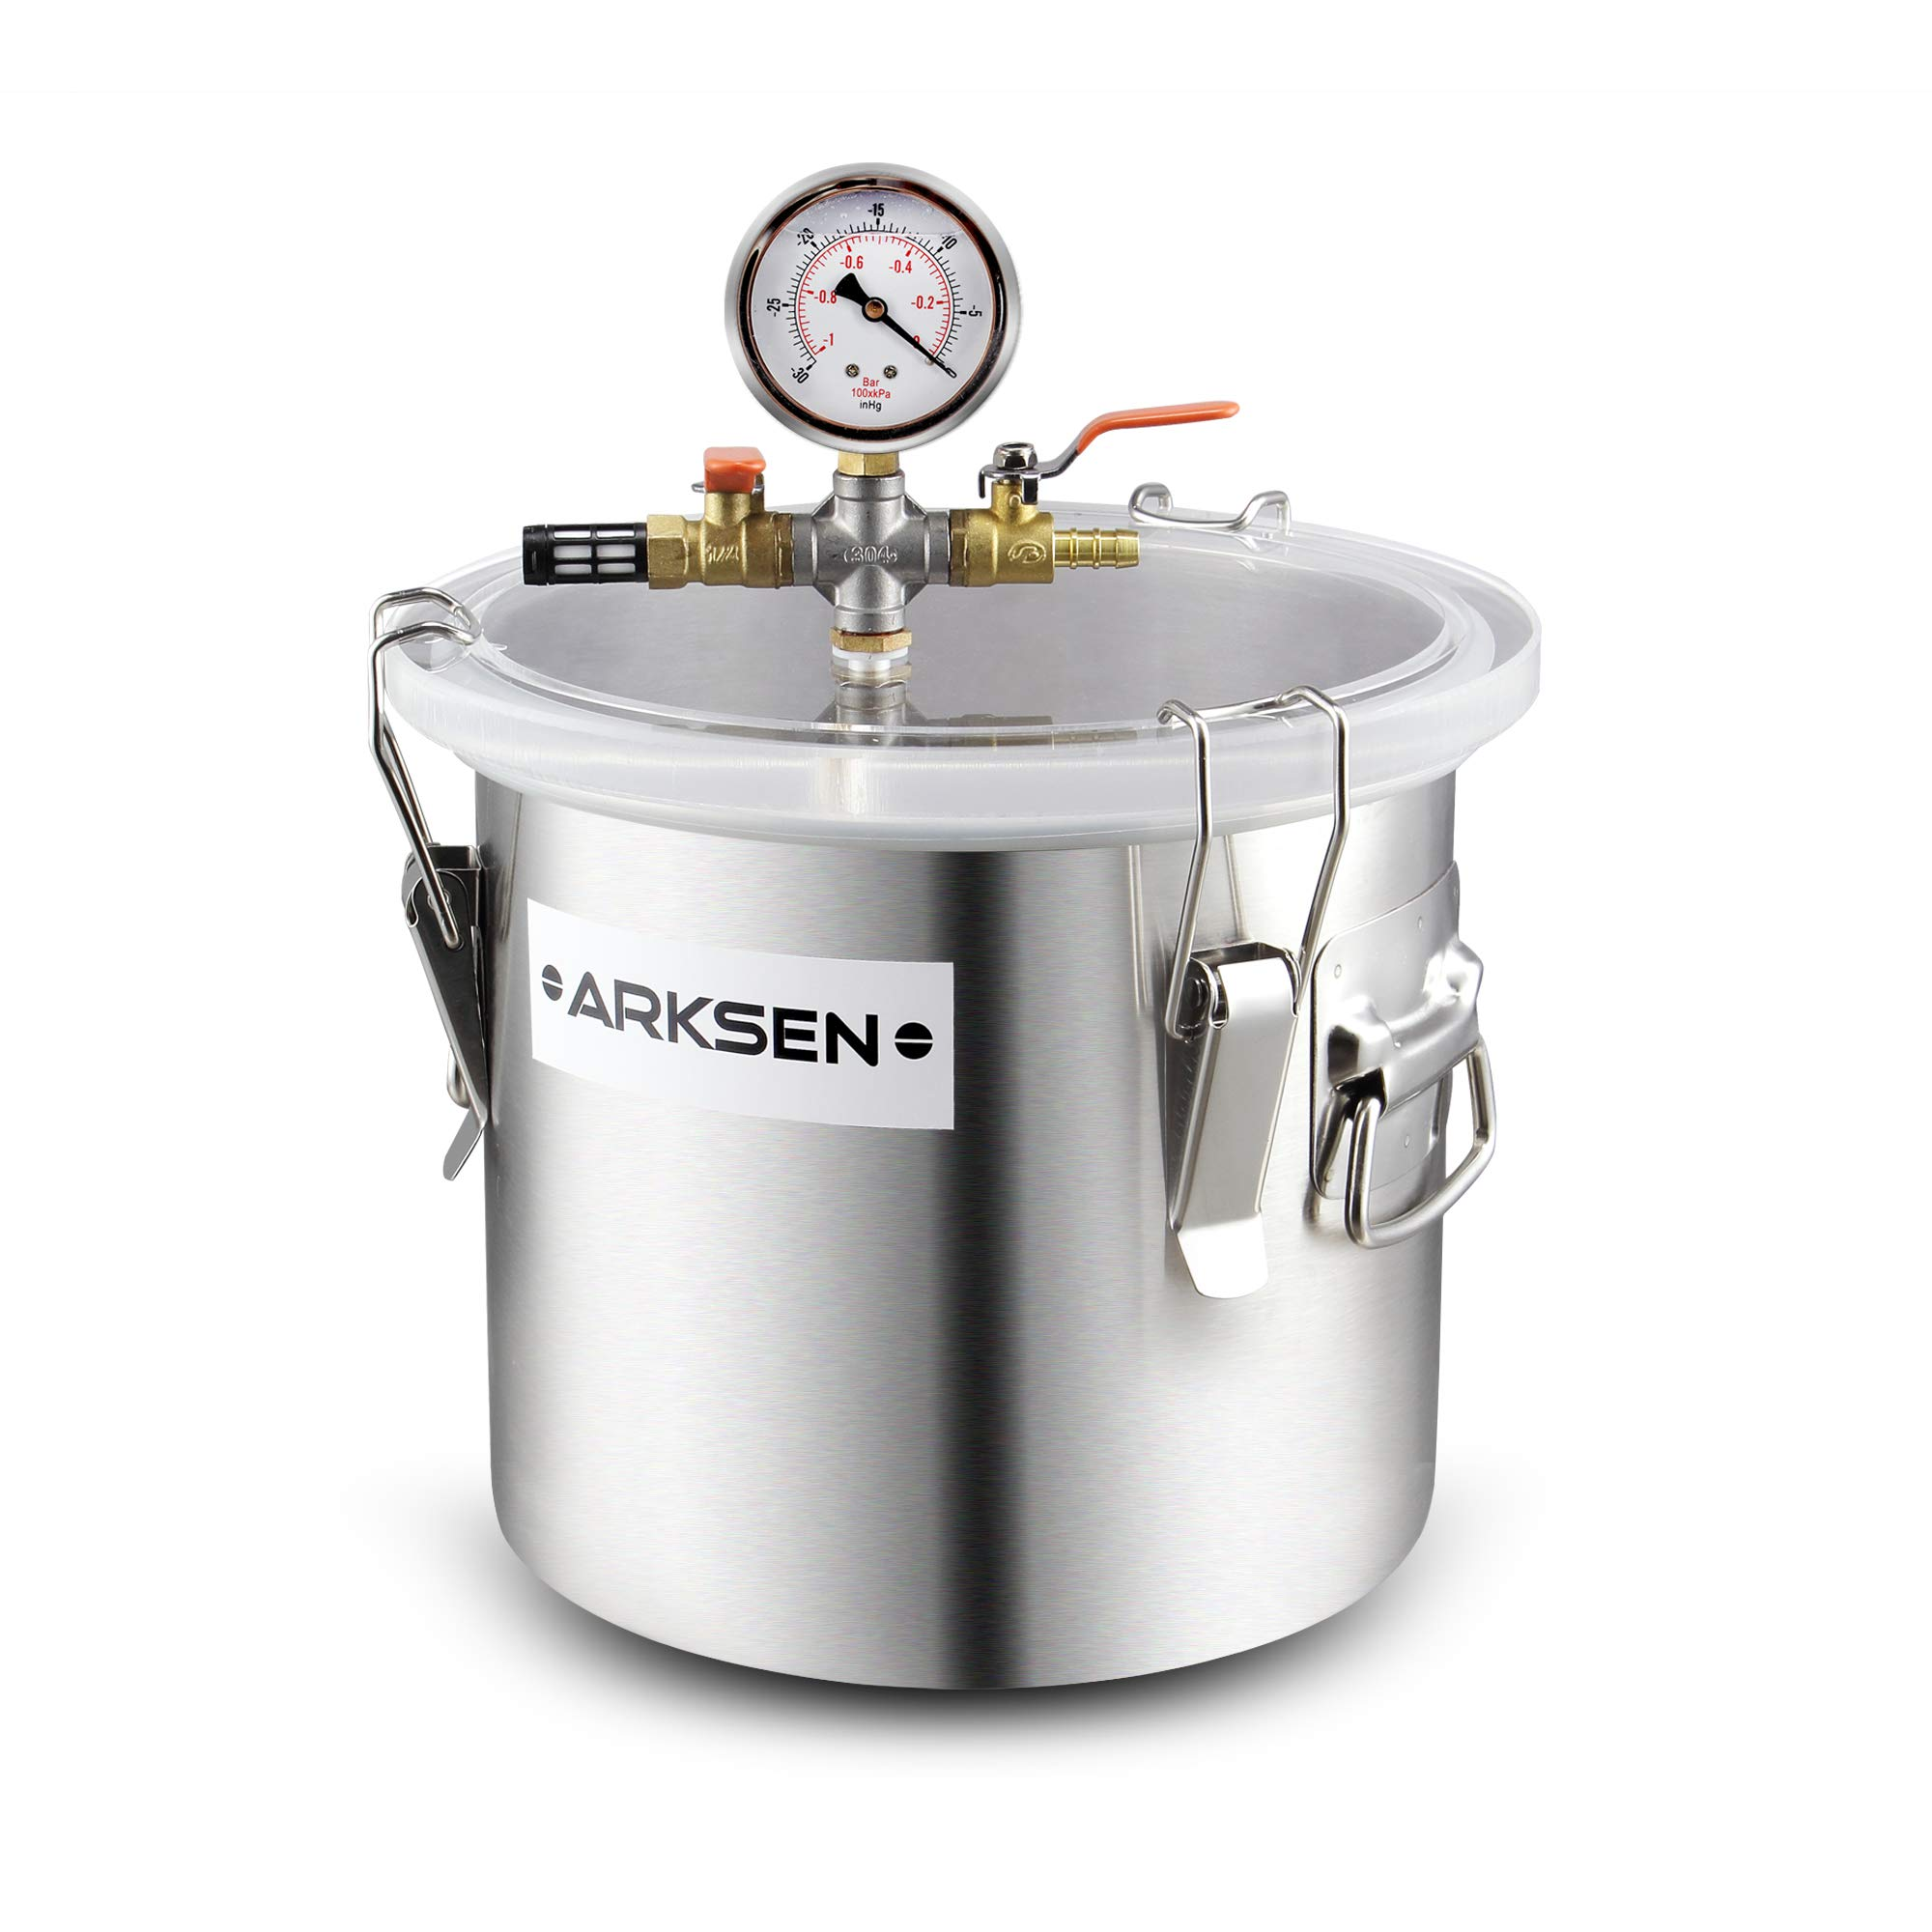 Arksen 2 Gallon Vacuum Chamber Stainless Steel Degassing Urethanes Resins Silicone Epoxies Lid Kit w/ 50 Micron Air Filter